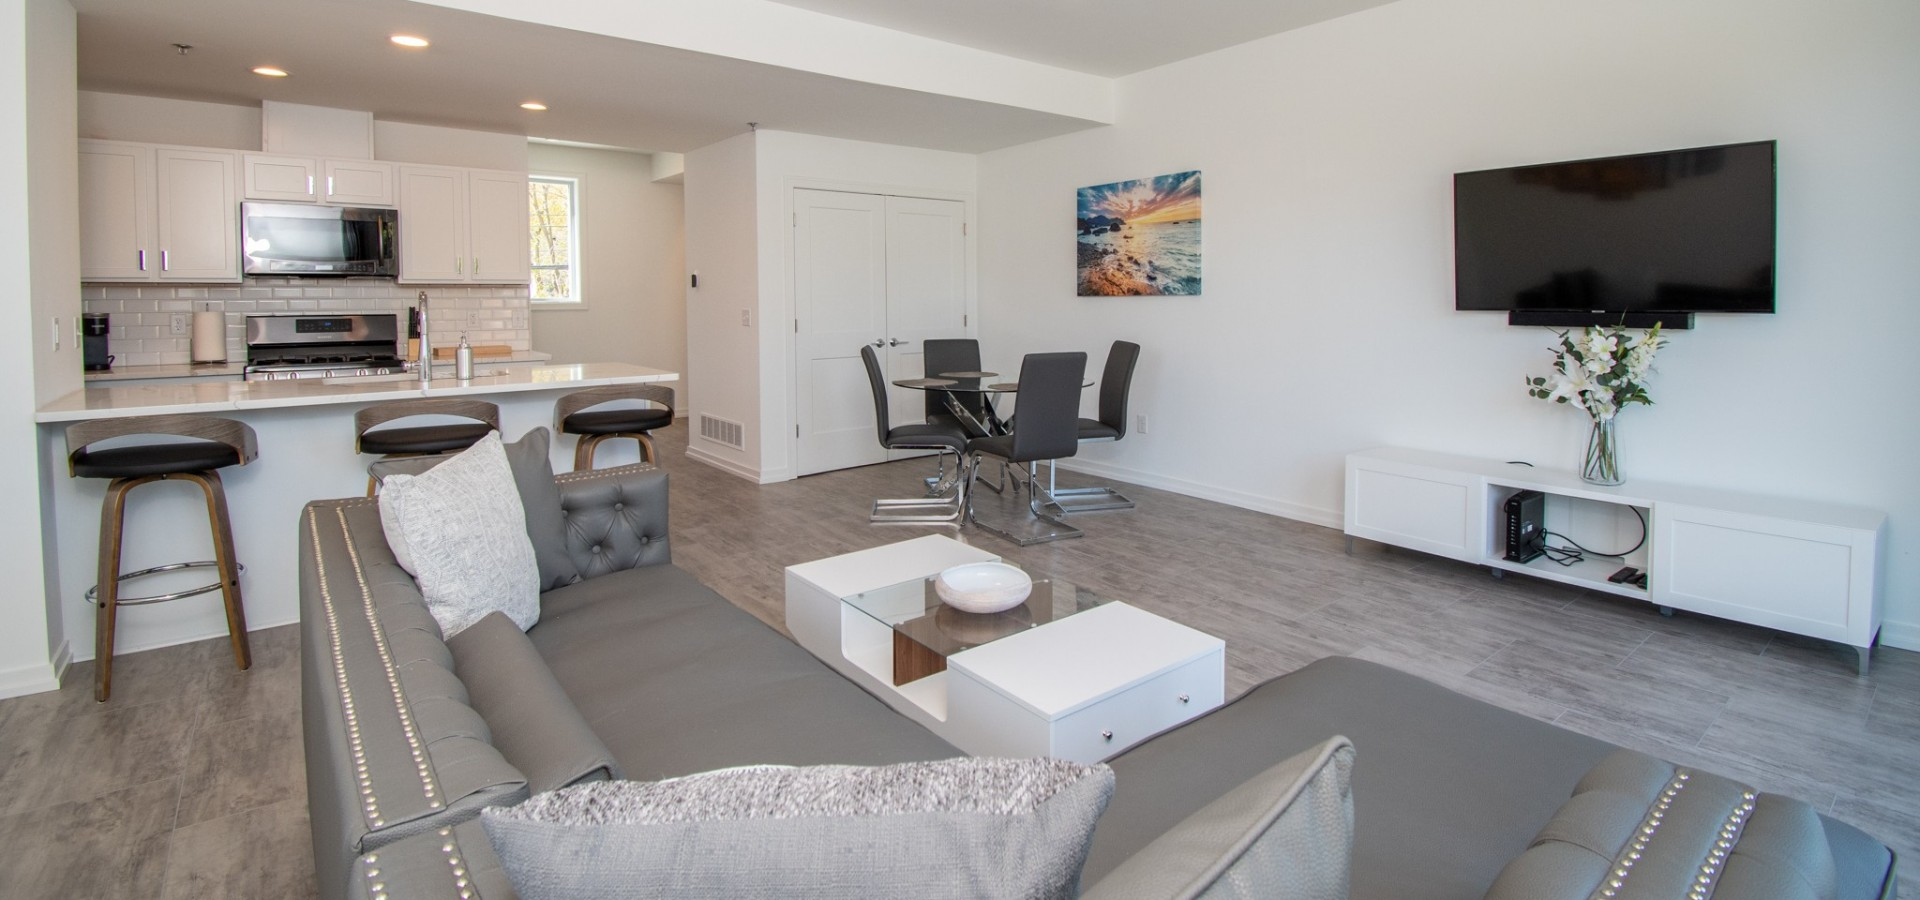 Fully Furnished Units with Flexible Lease Terms.